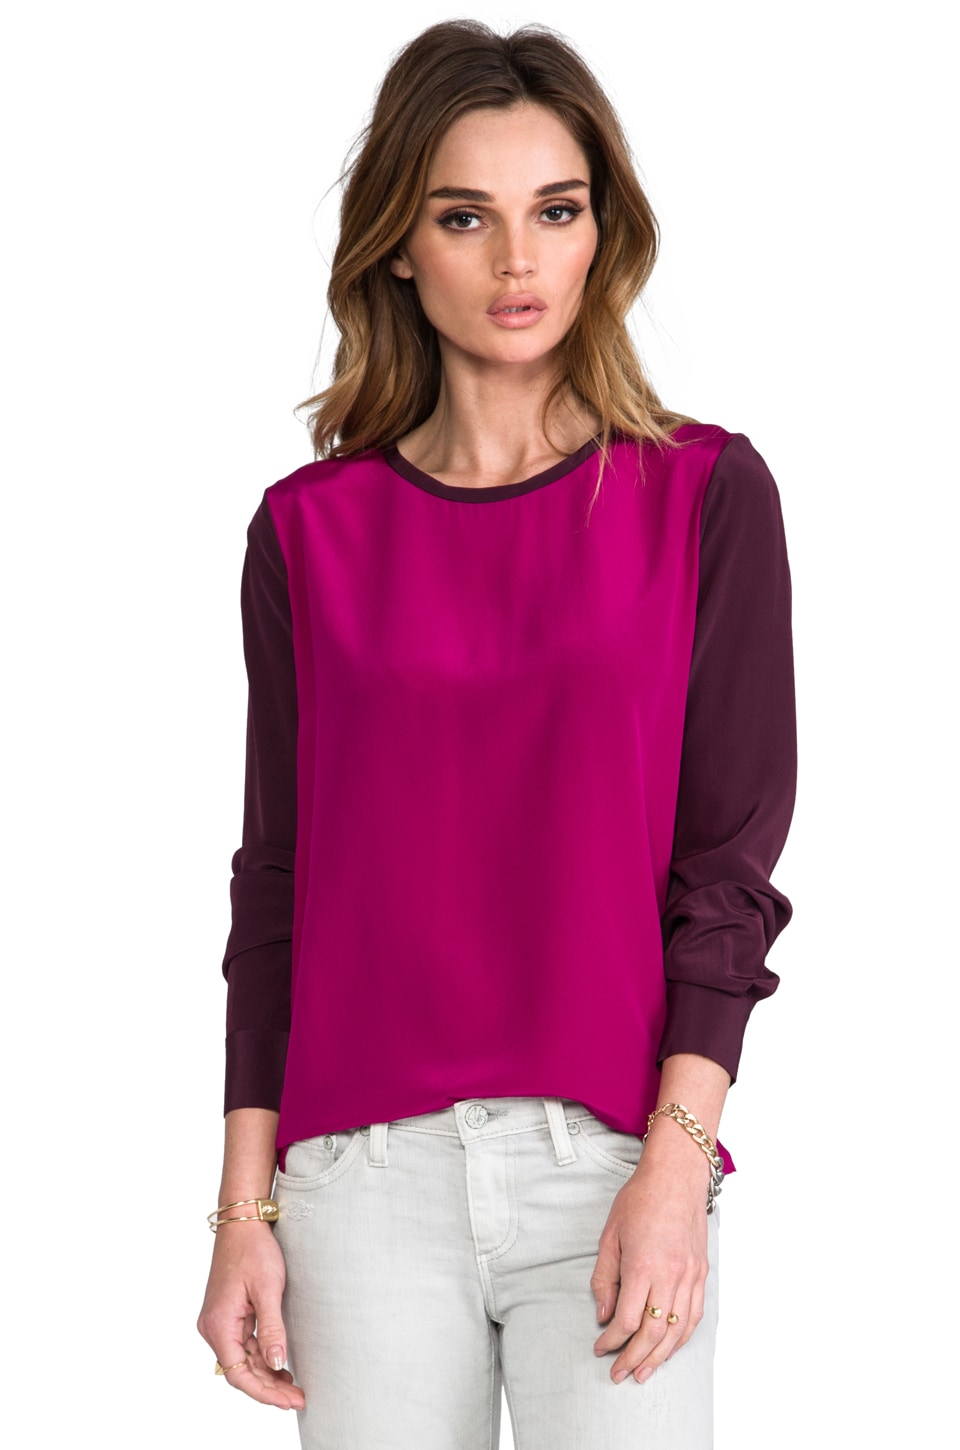 Diane von Furstenberg Louisa Top in Brazen Plum/Rouge